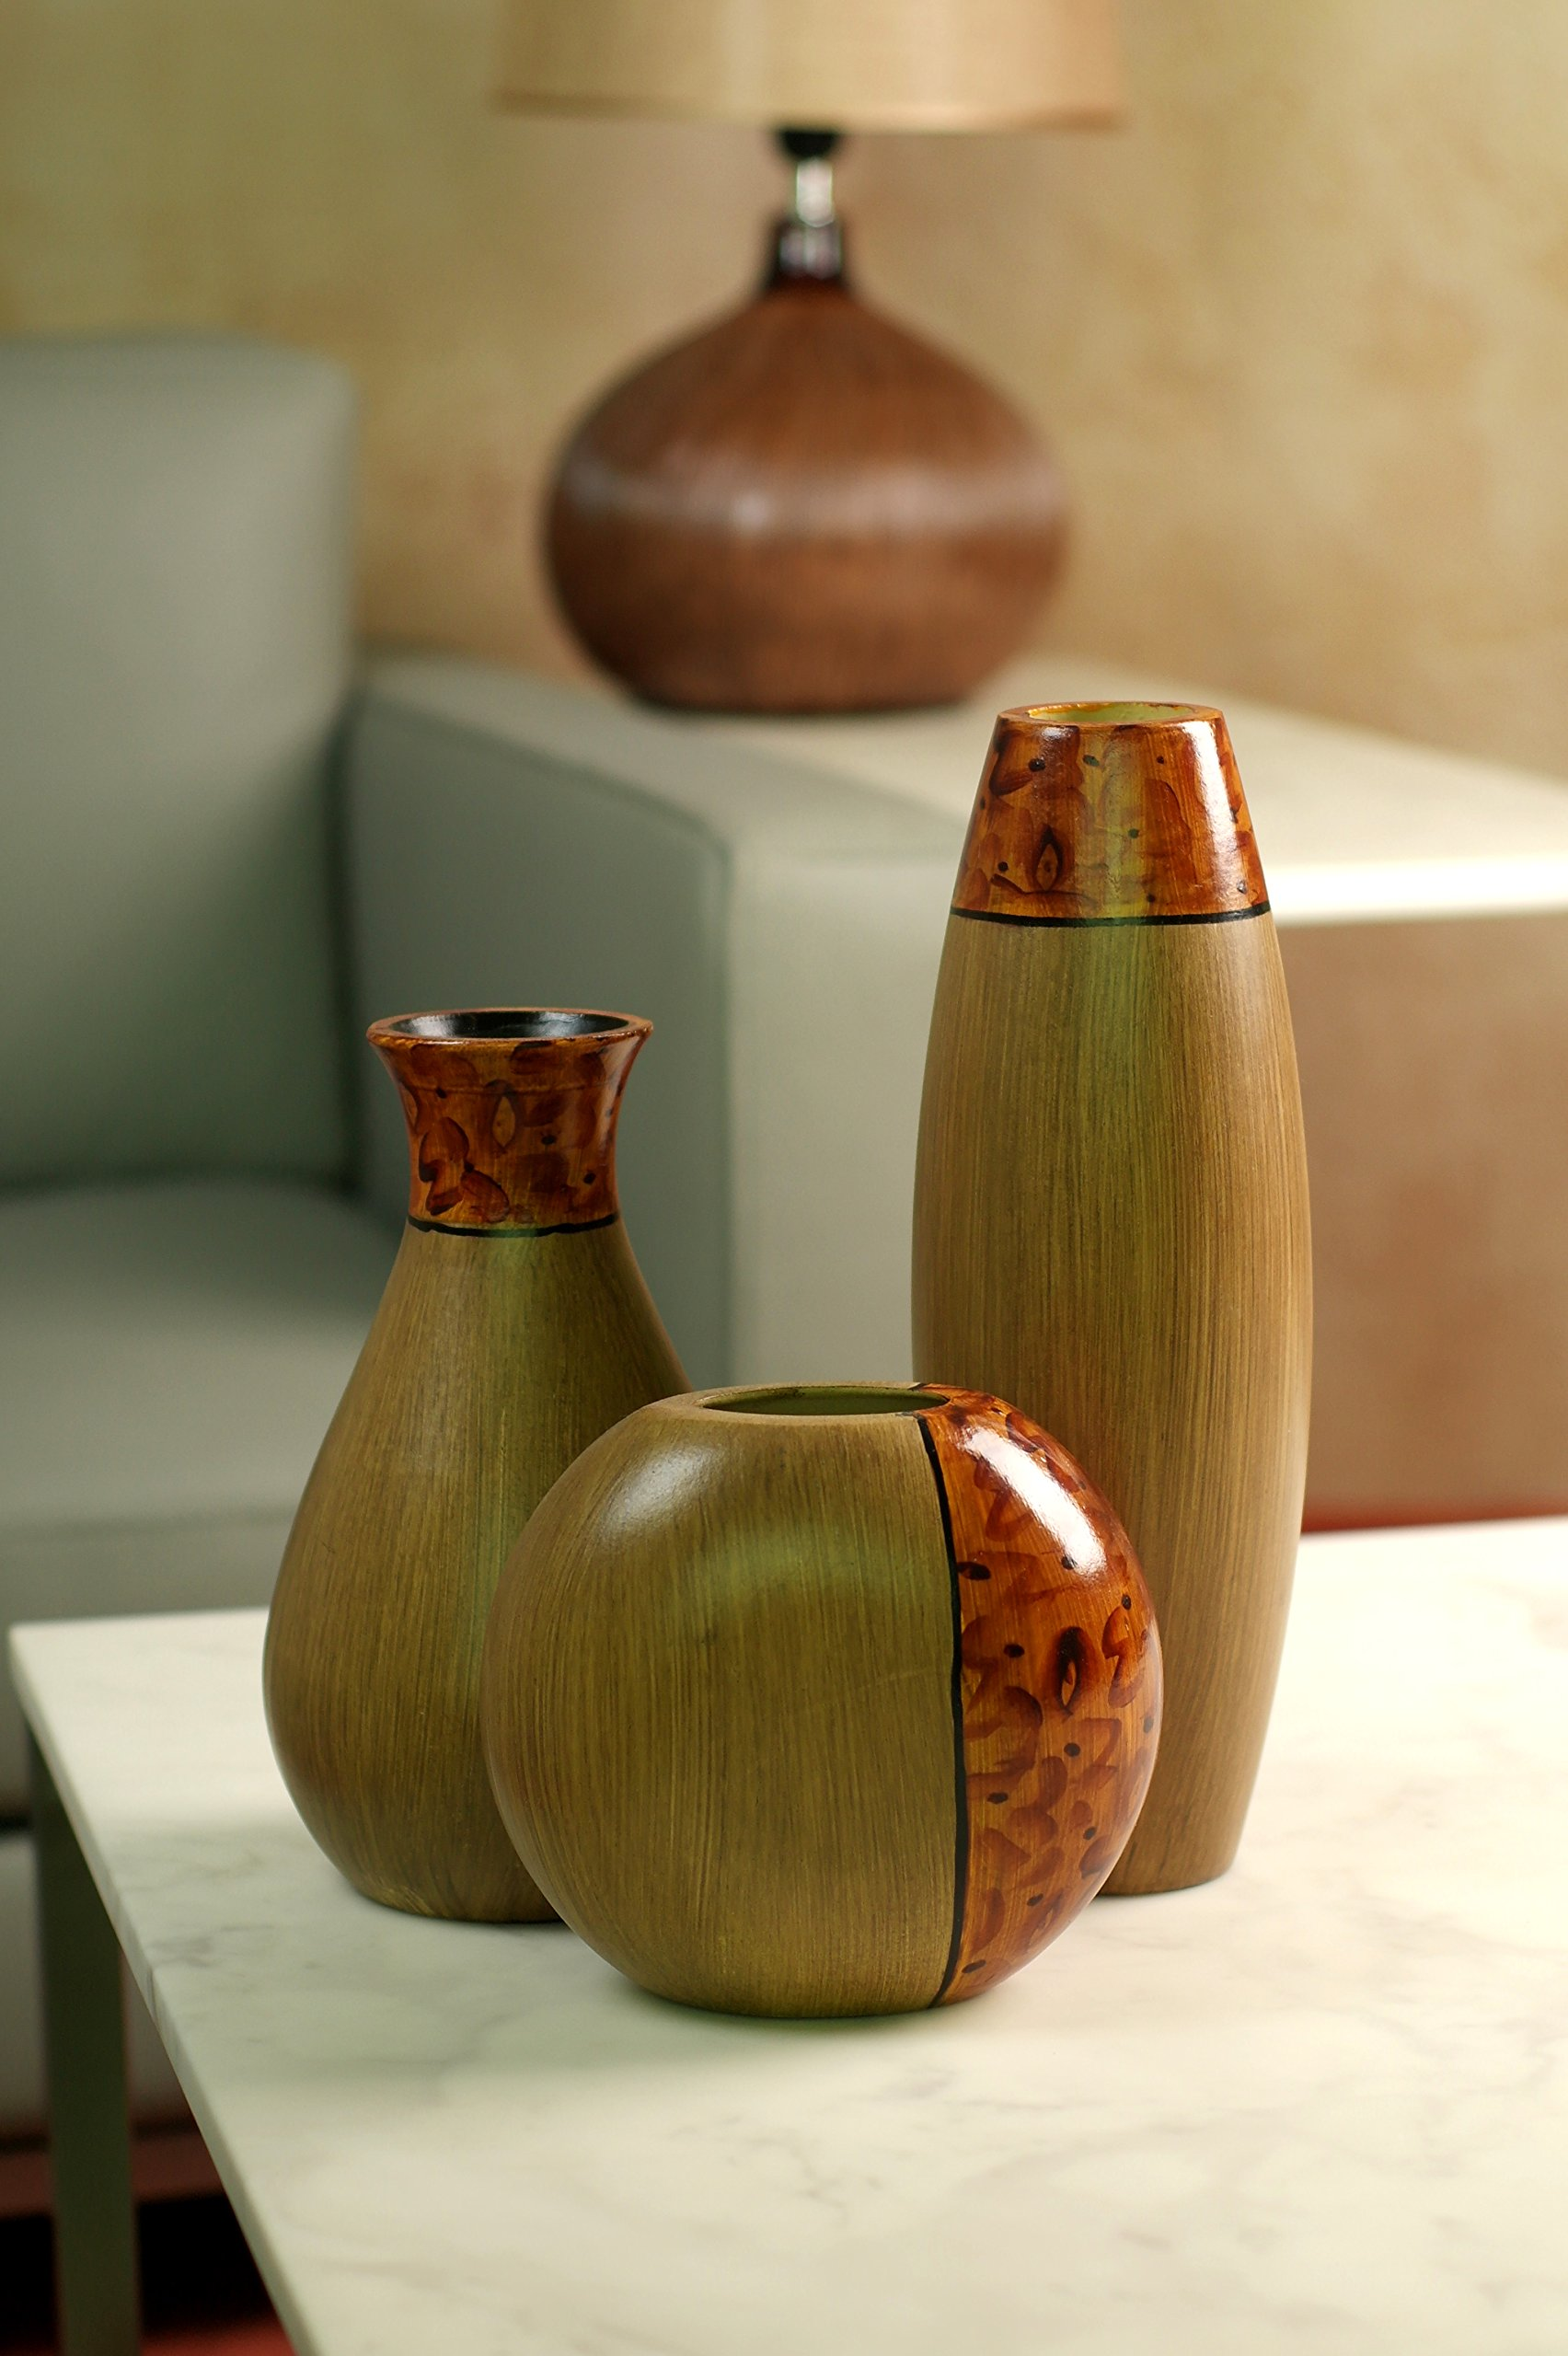 Hosley's Set of 3 Burlwood Vases. Ideal Gift for Wedding or Special Occasion and for Home Office, Decor, Floor Vases, Spa, Aromatherapy Settings O3 by Hosley (Image #5)